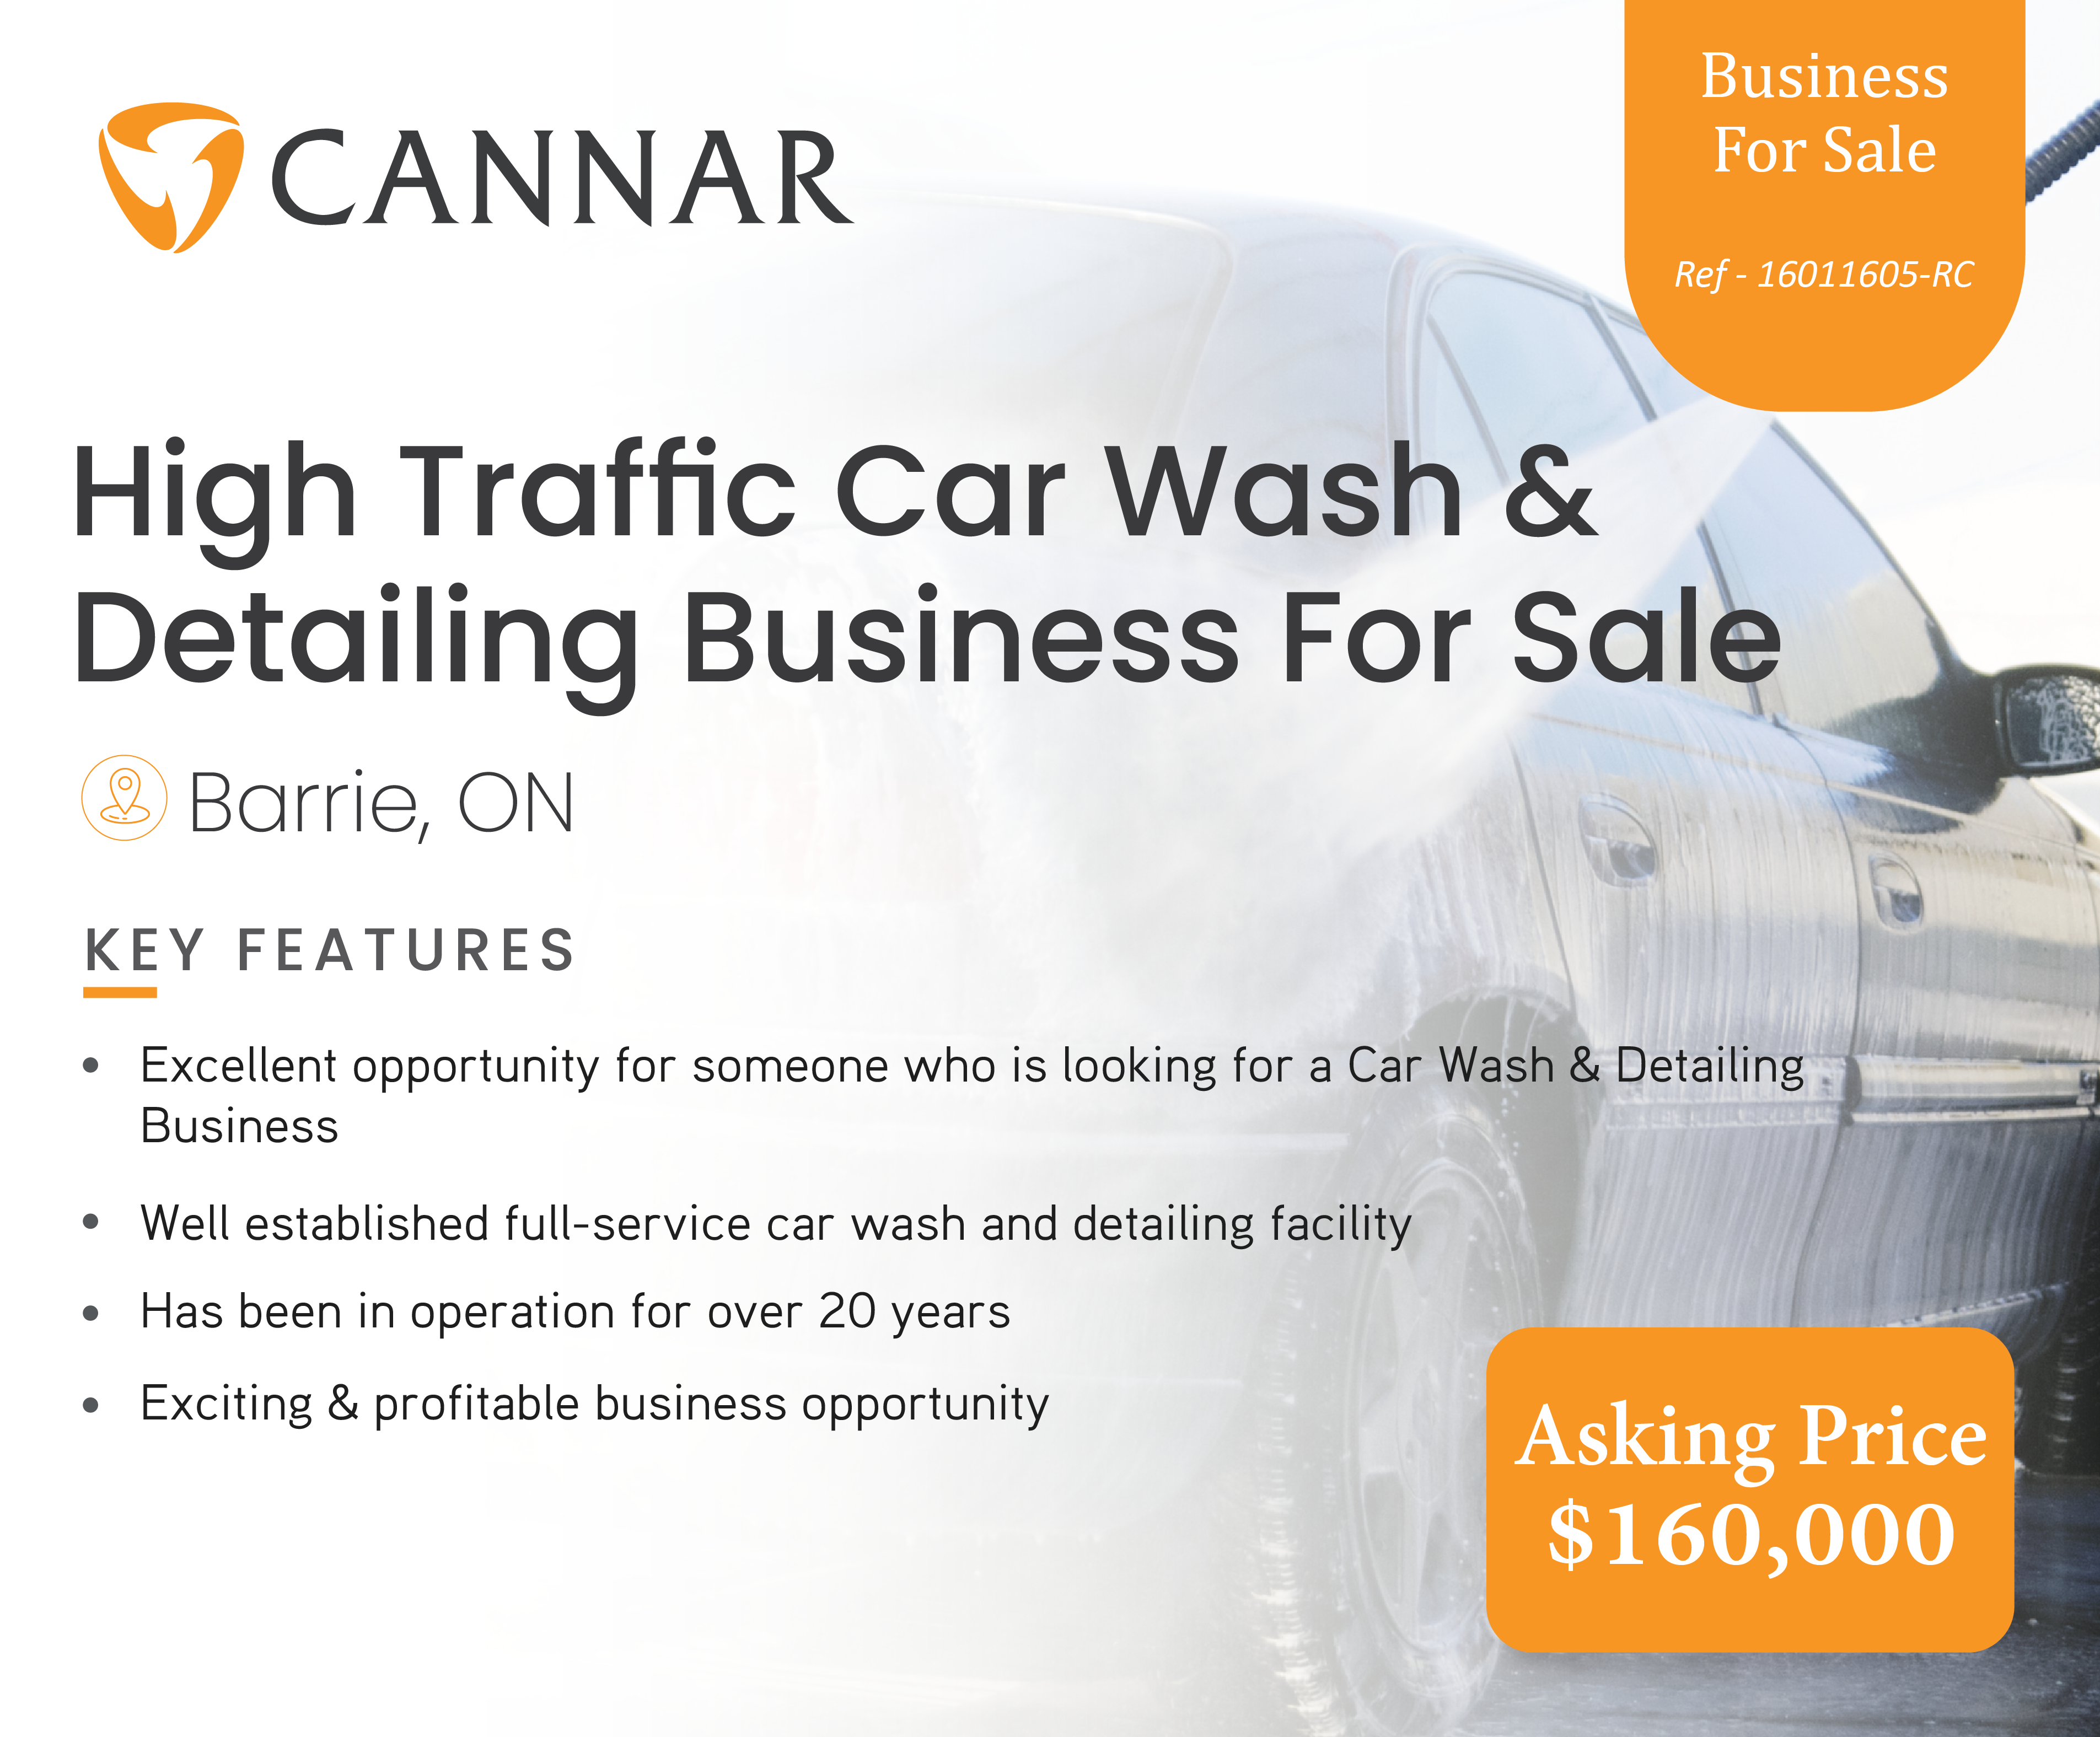 High Traffic Car Wash & Detailing Business For Sale